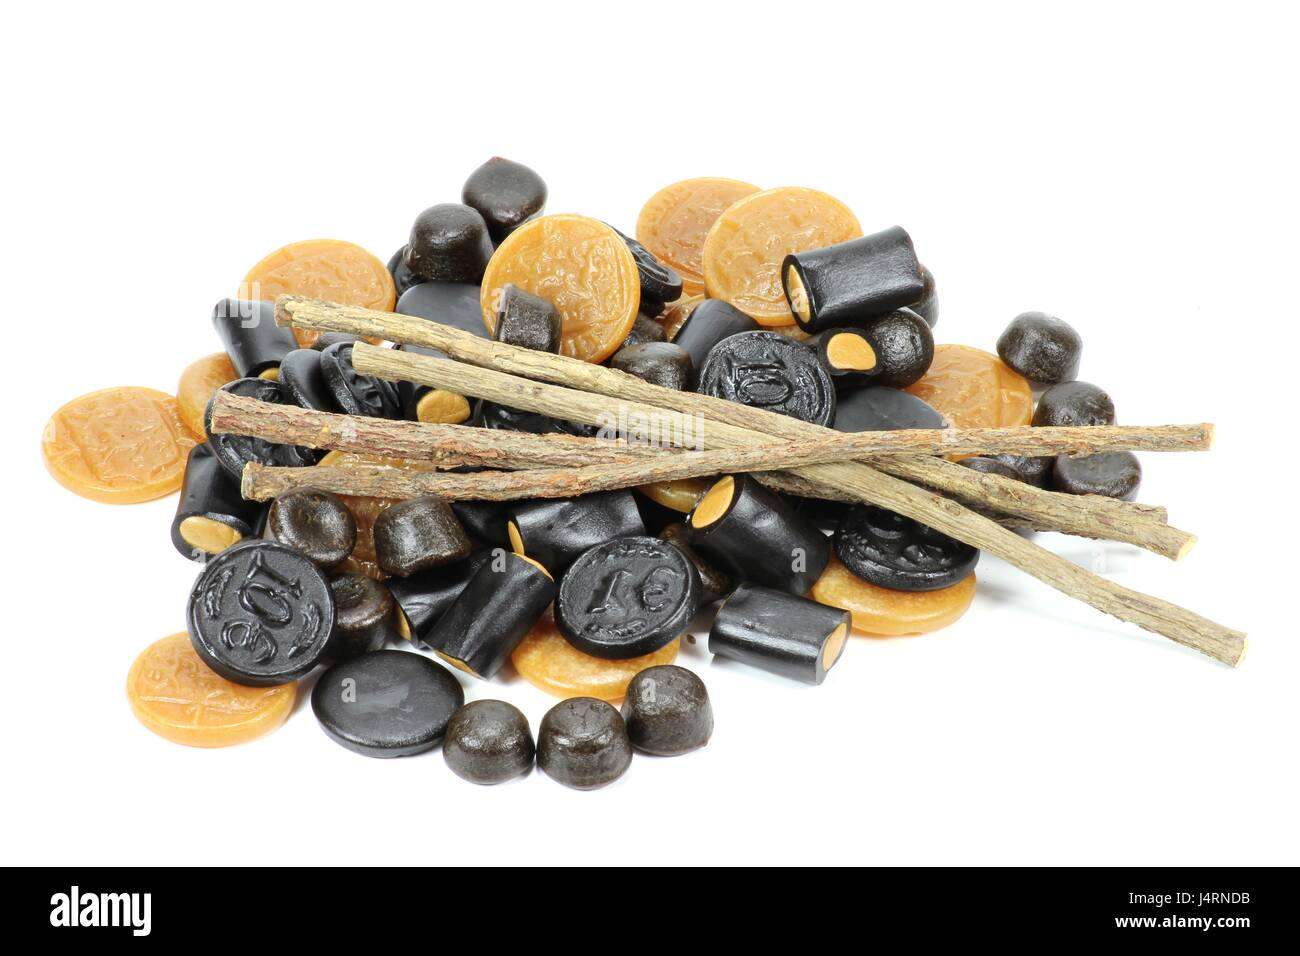 licorice candies with dried sticks of licorice root isolated on white background - Stock Image